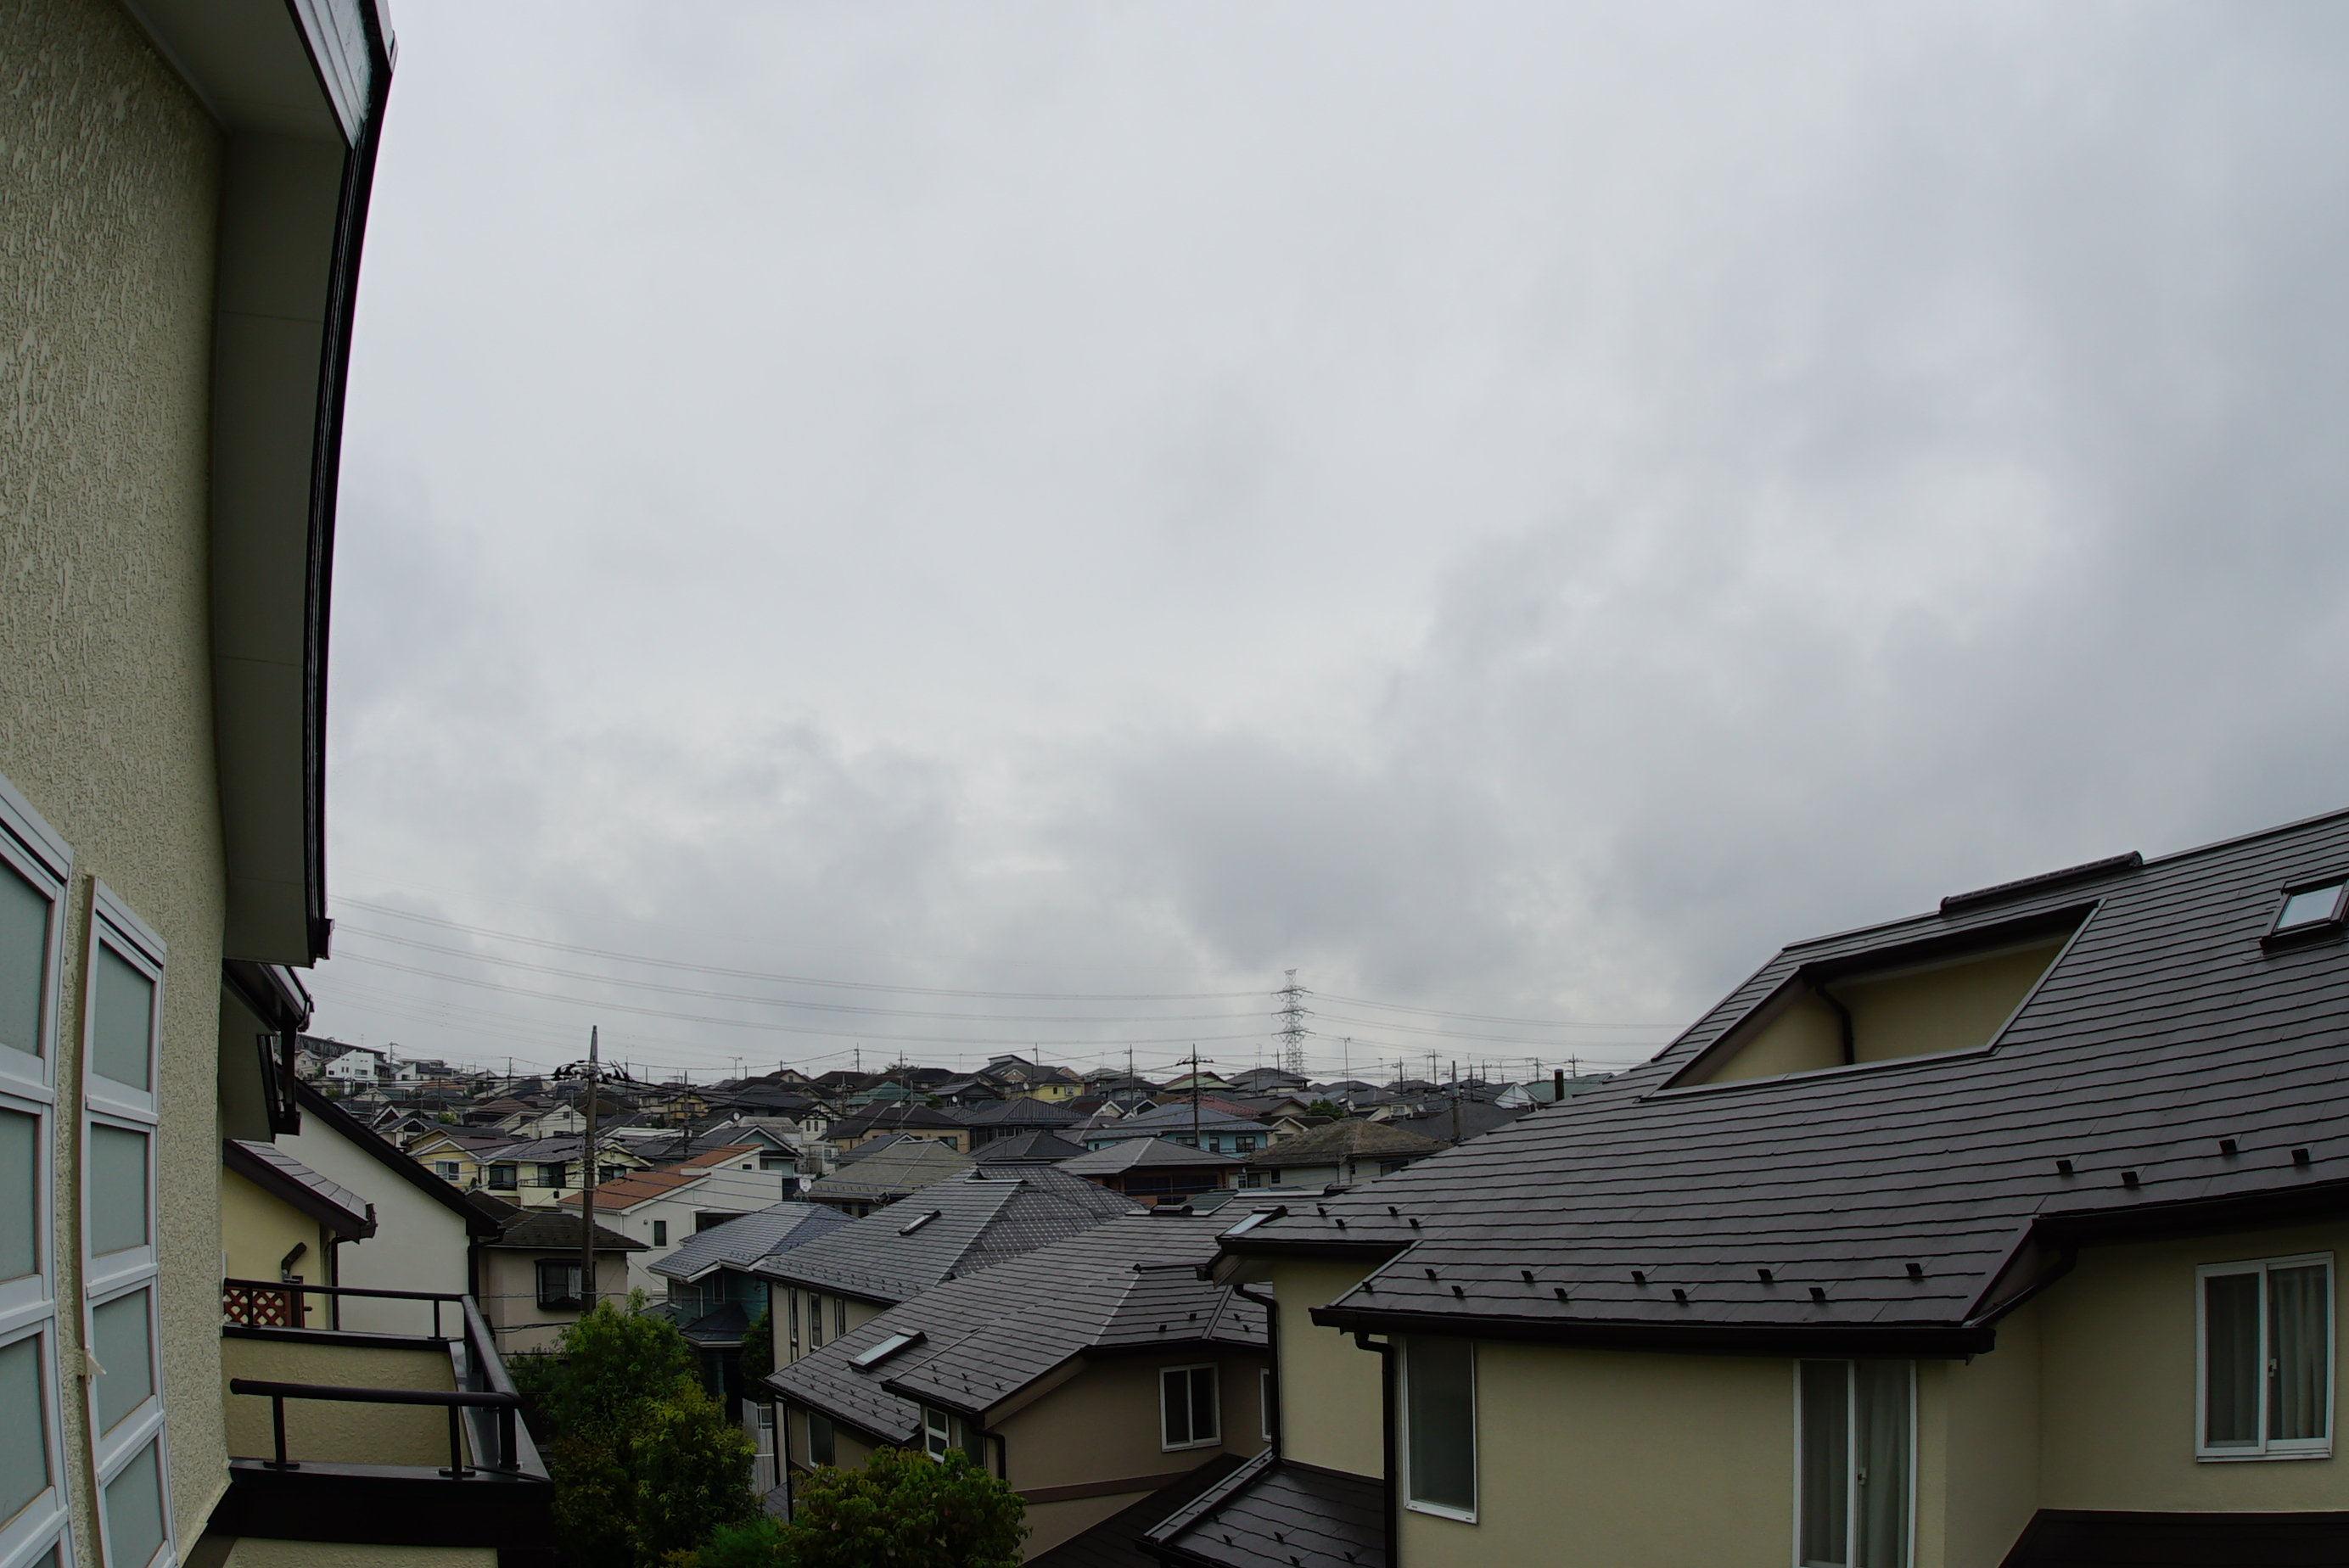 α7s_Sigma_FishEye_15mm_ISO100